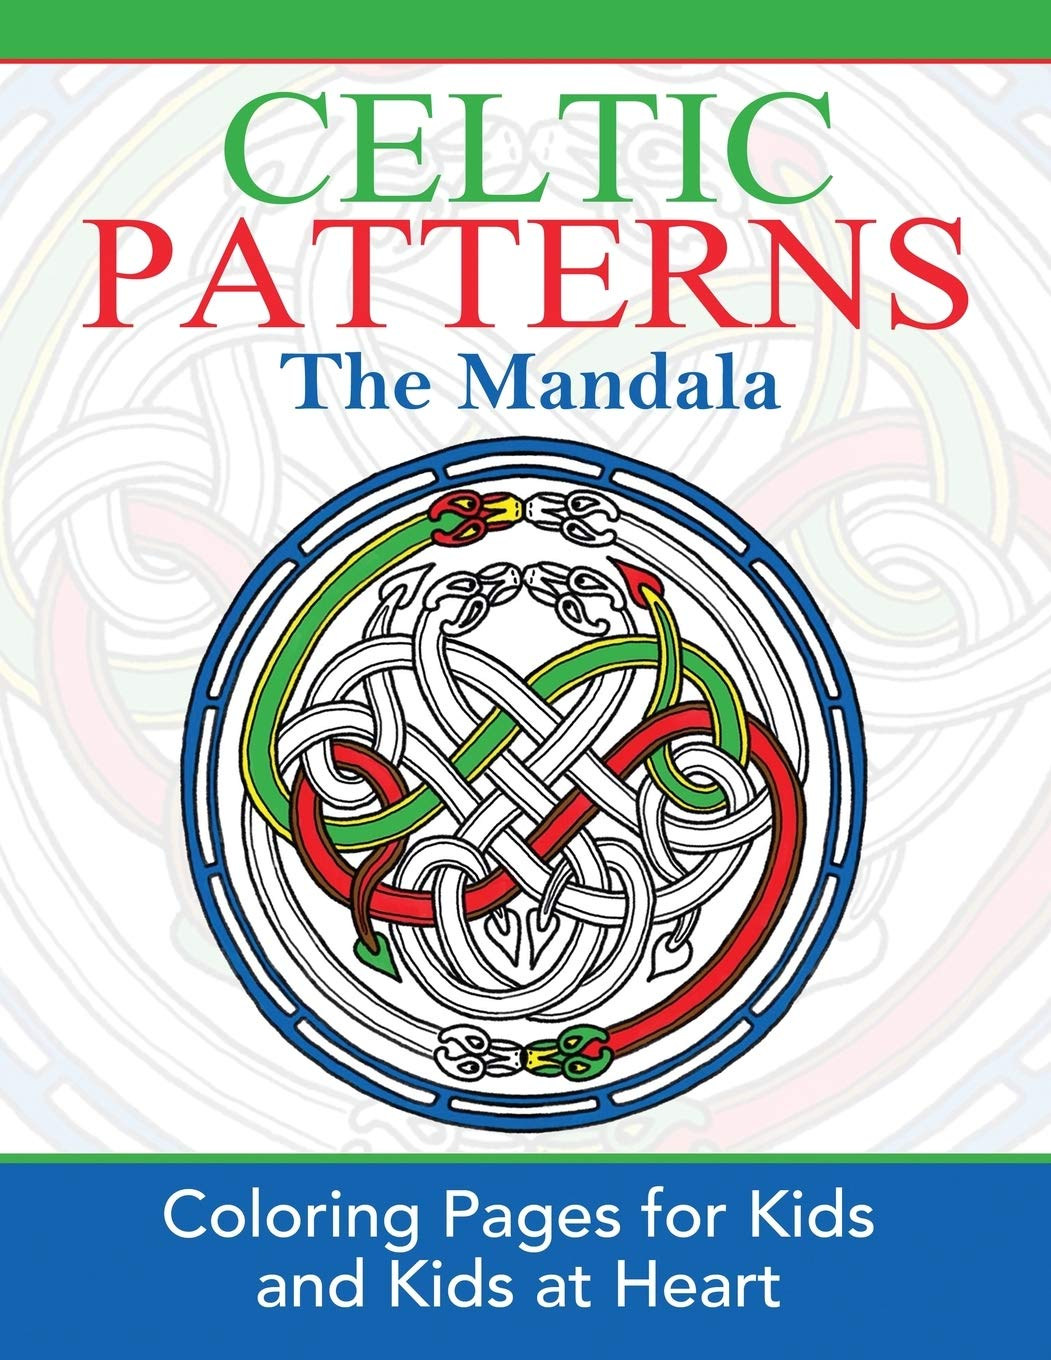 Celtic Patterns The Mandala Coloring Pages For Kids Kids At Heart Hands On Art History Volume 1 Art History Hands On 9781948344159 Amazon Com Books